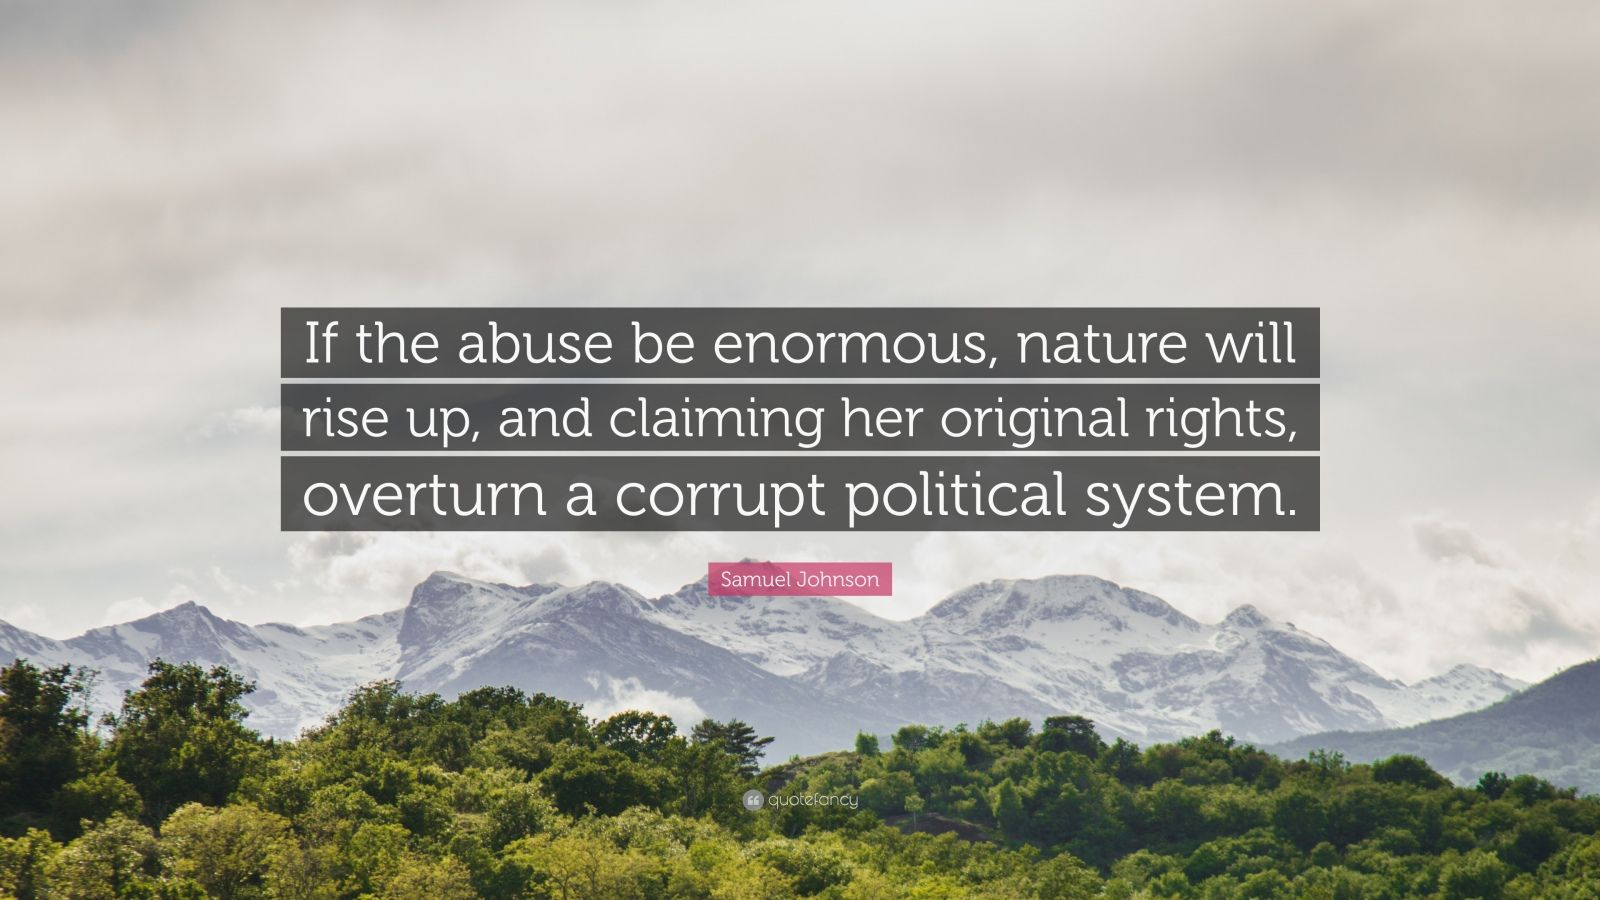 """Samuel Johnson Quote: """"If the abuse be enormous, nature will rise up, and claiming her original rights, overturn a corrupt political system."""""""